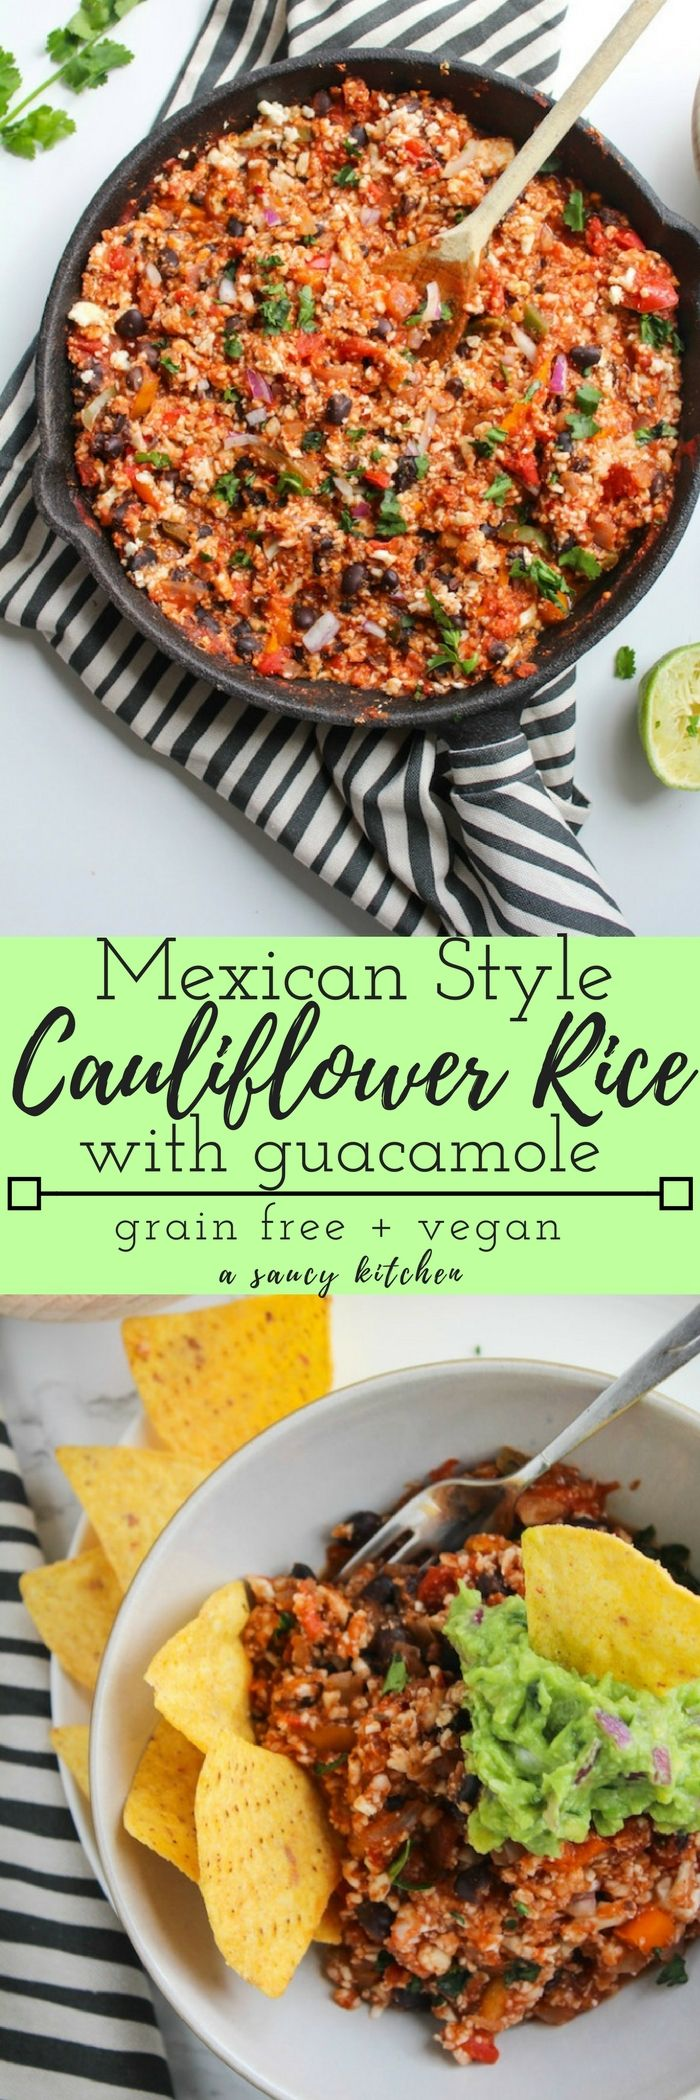 Mexican Style Cauliflower Rice with guacamole - an easy & healthy, one skillet plant based dinner | Grain Free, Vegan, Gluten Free